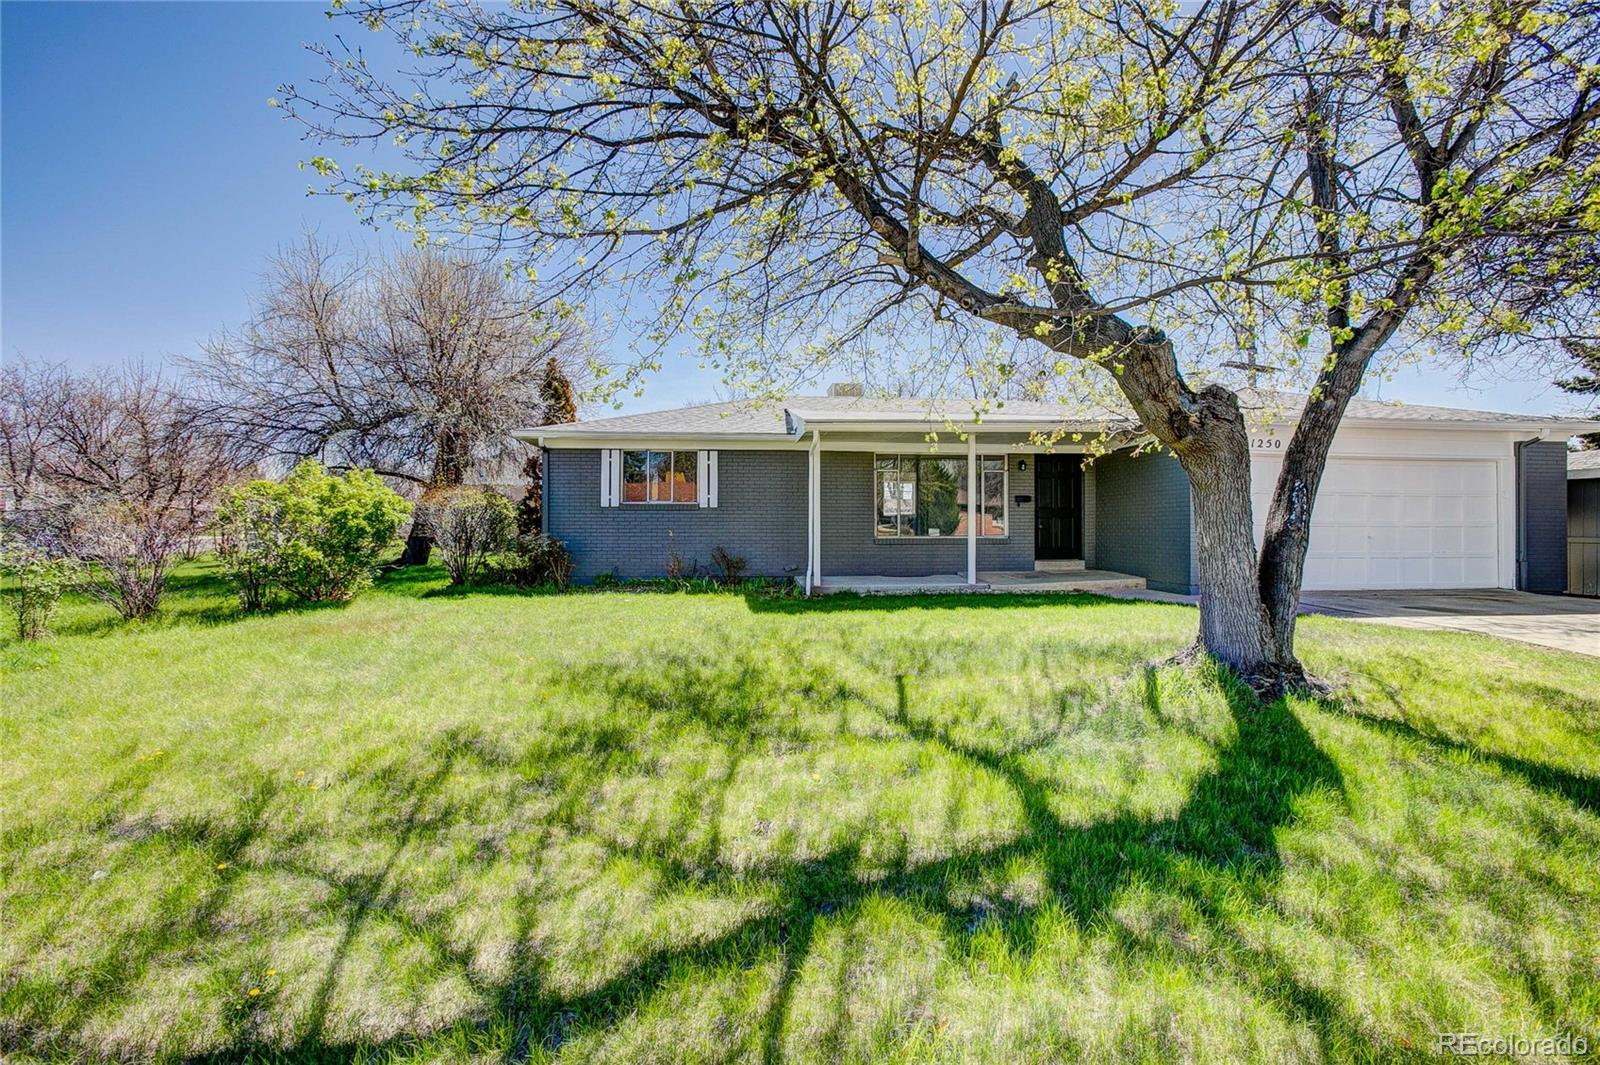 MLS# 9710462 - 1 - 1250 W 7th Ave Dr, Broomfield, CO 80020